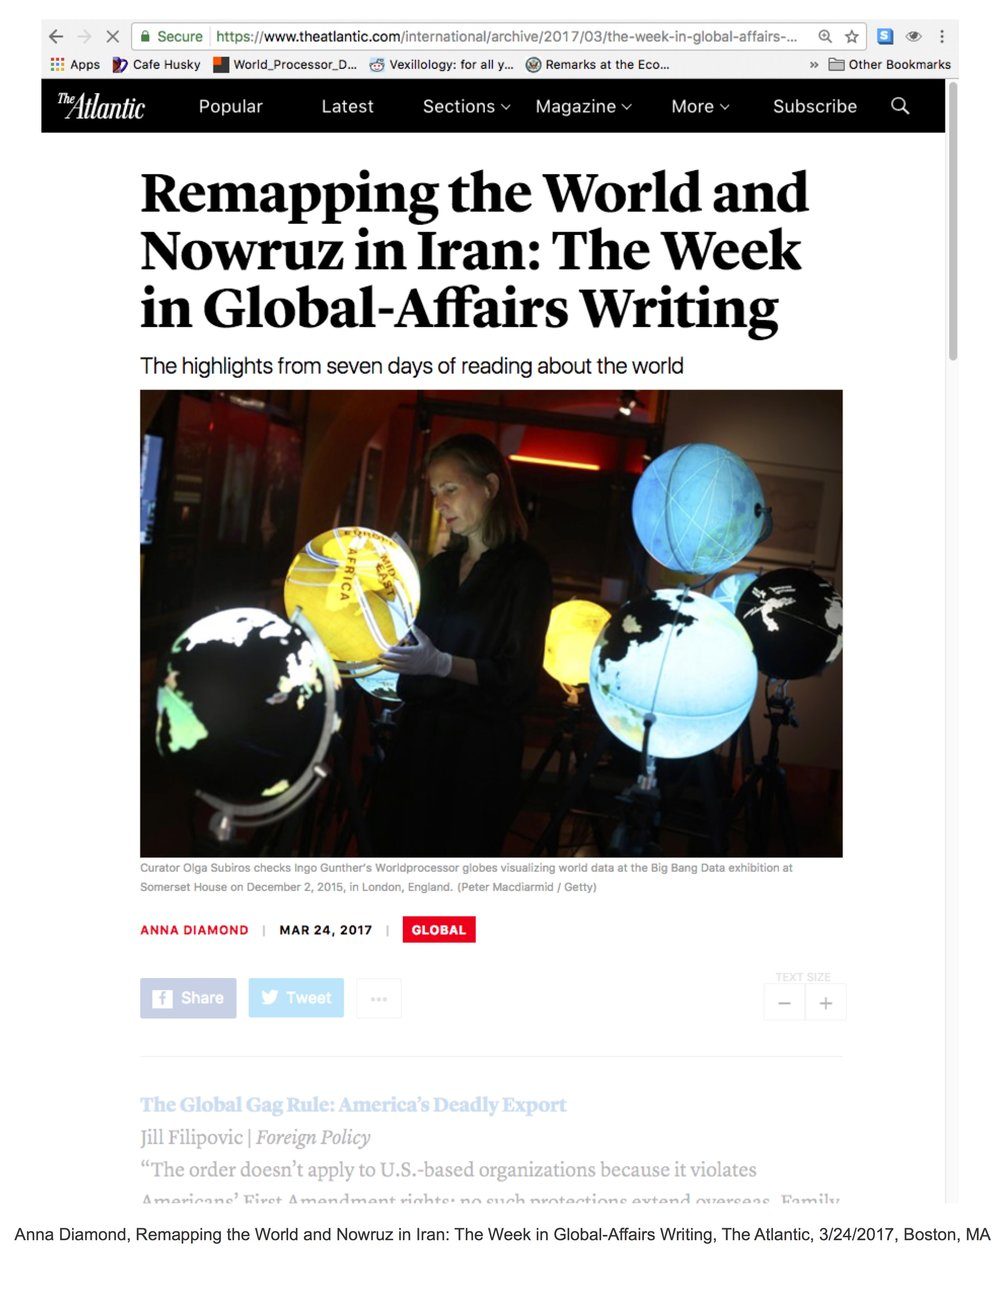 Anna Diamond, Remapping the World and Nowruz in Iran: The Week in Global-Affairs Writing, The Atlantic, March 24, 2017, Boston, MA [visuals].pages.jpg